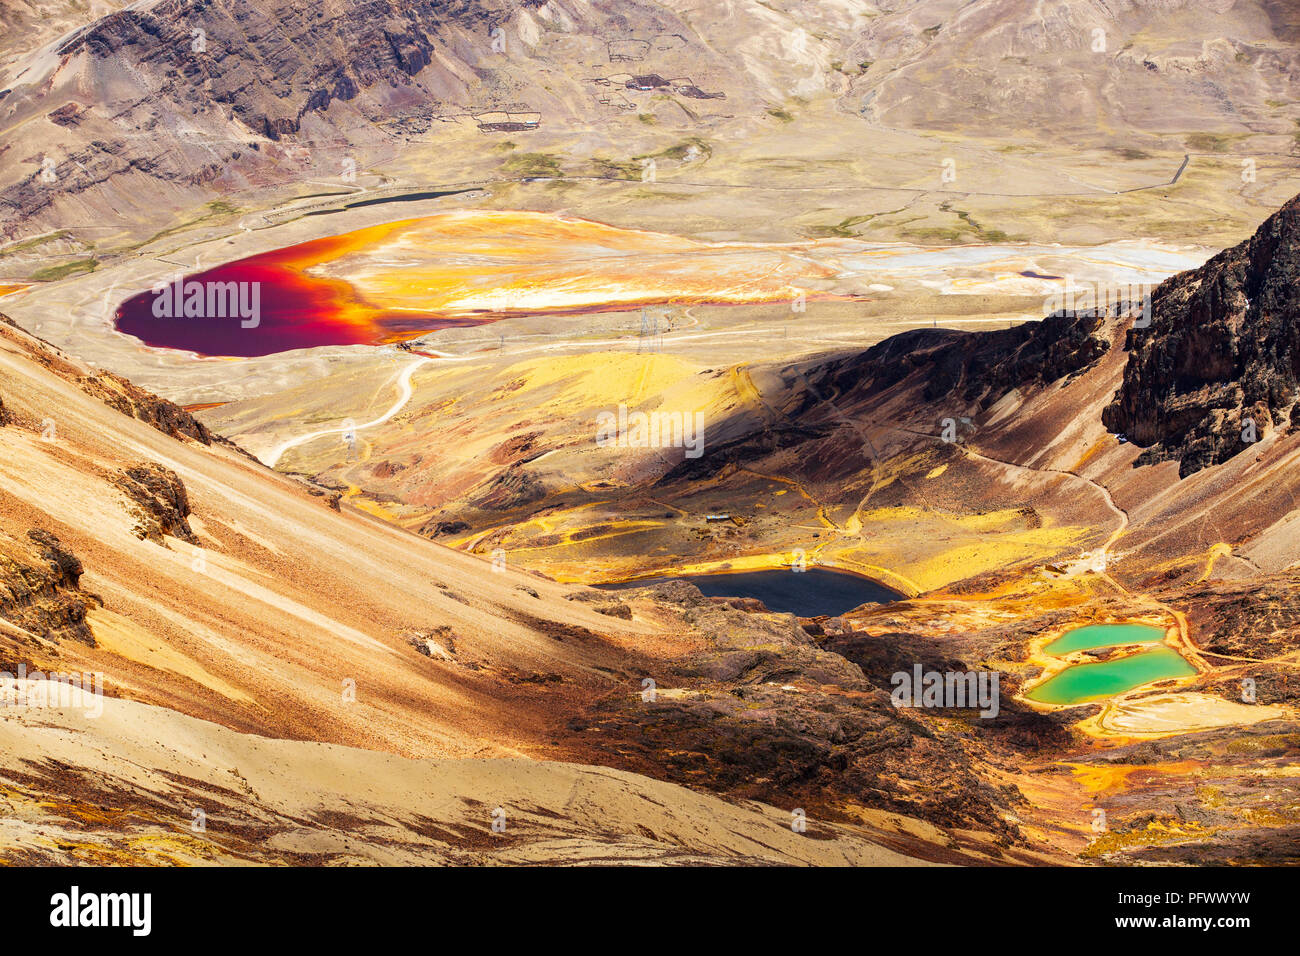 Colourful lakes below the peak of Chacaltaya in the Bolivian Andes, with a lake discoloured by mine effluent. - Stock Image